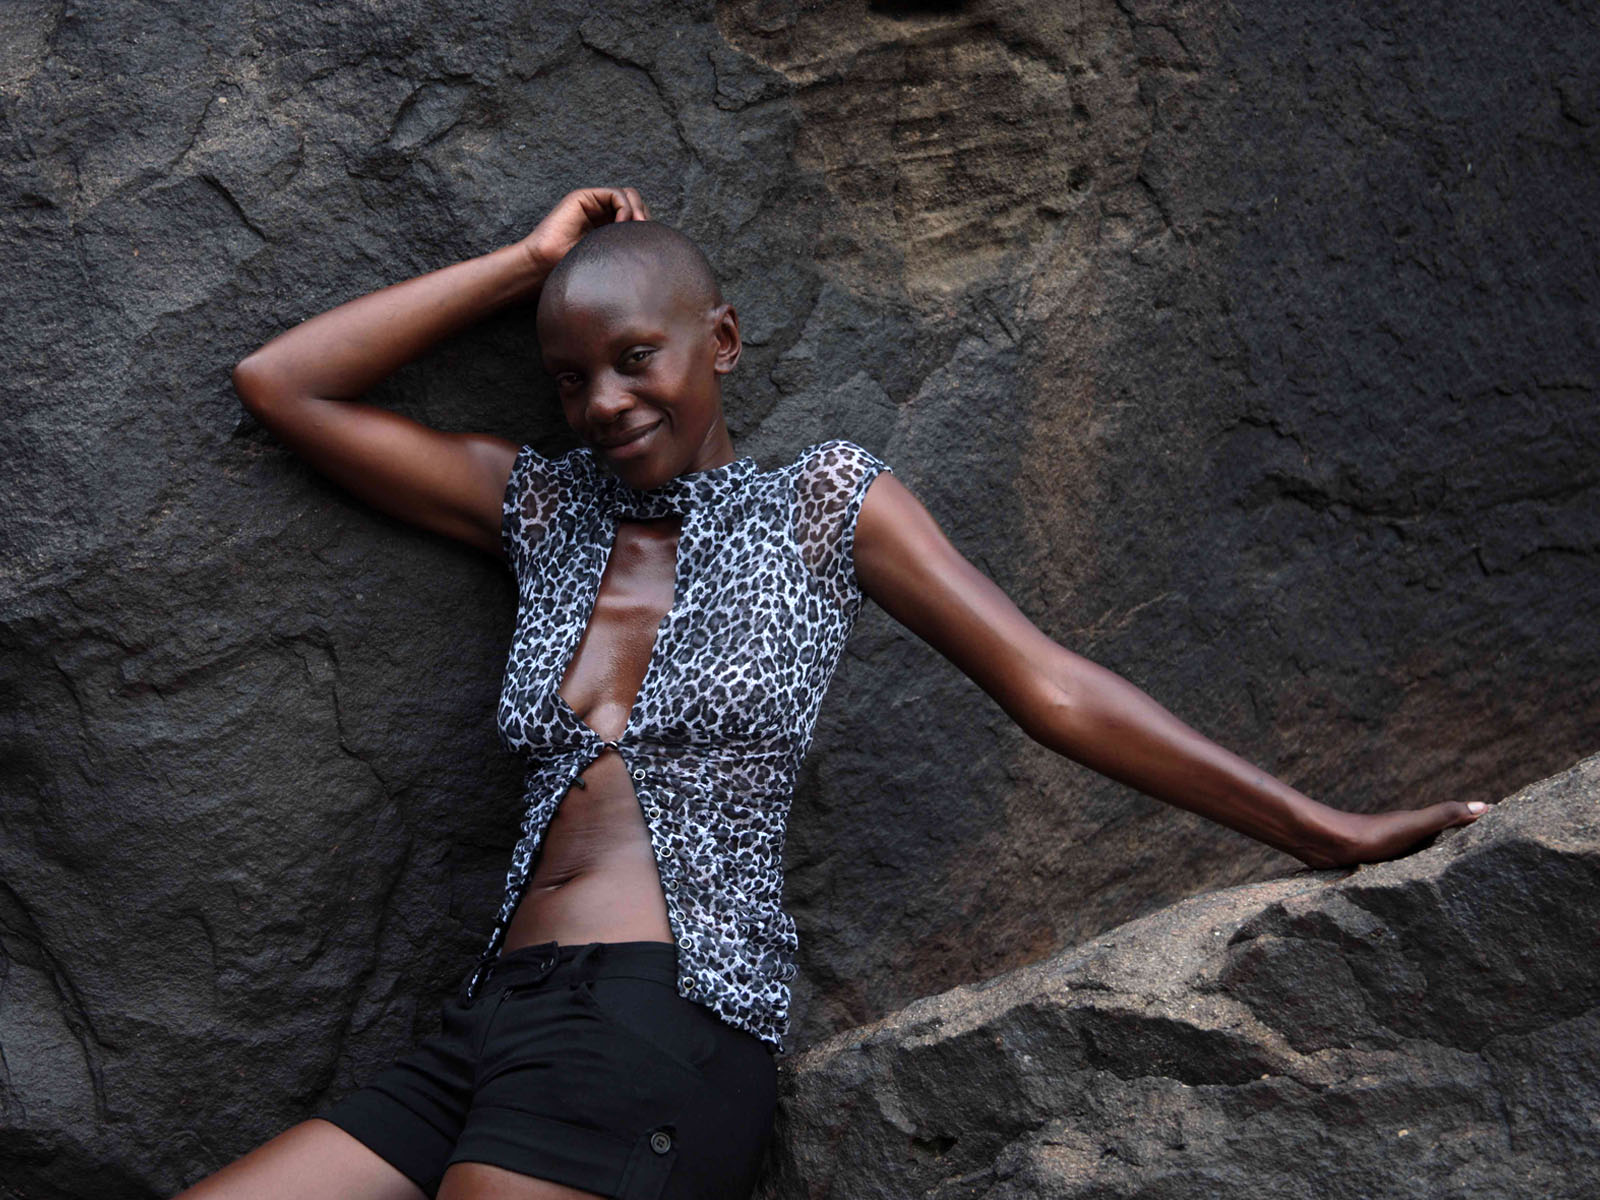 Gallery Tours & Safari - Photo-Shoots